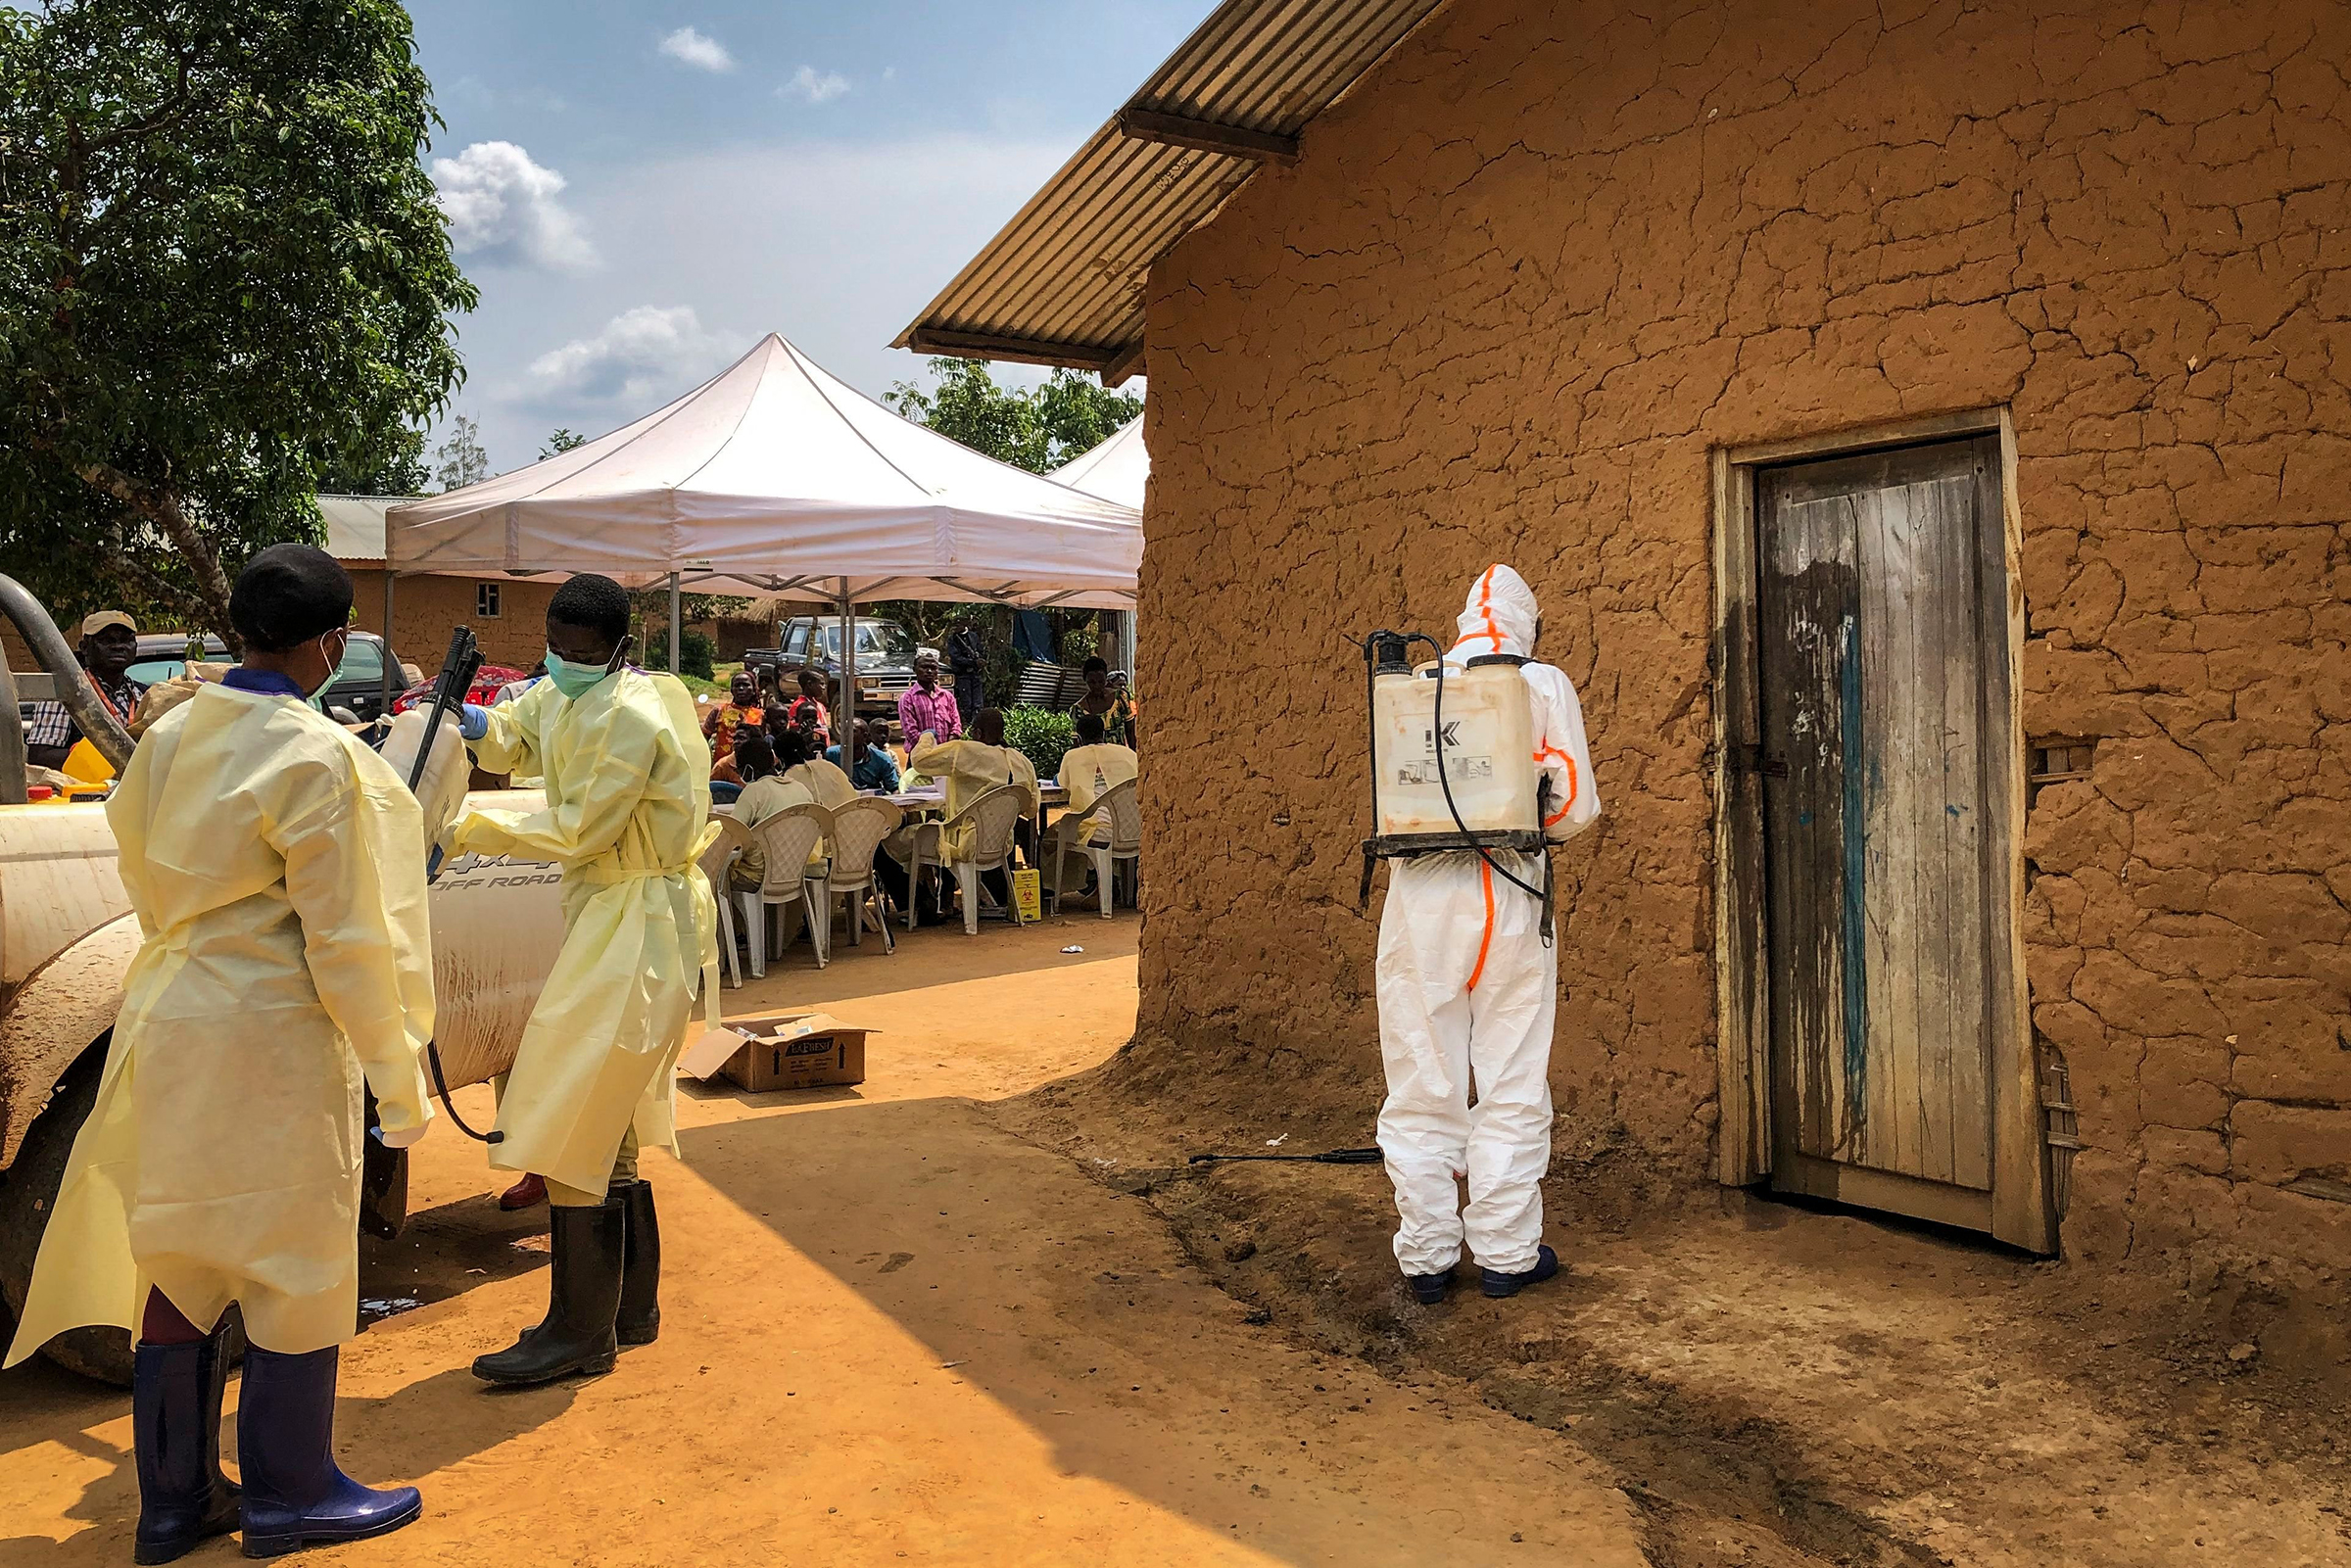 A worker from the World Health Organization (WHO) decontaminates the doorway of a house on a plot where two cases of Ebola were found, in the village of Mabalako, in eastern Congo.